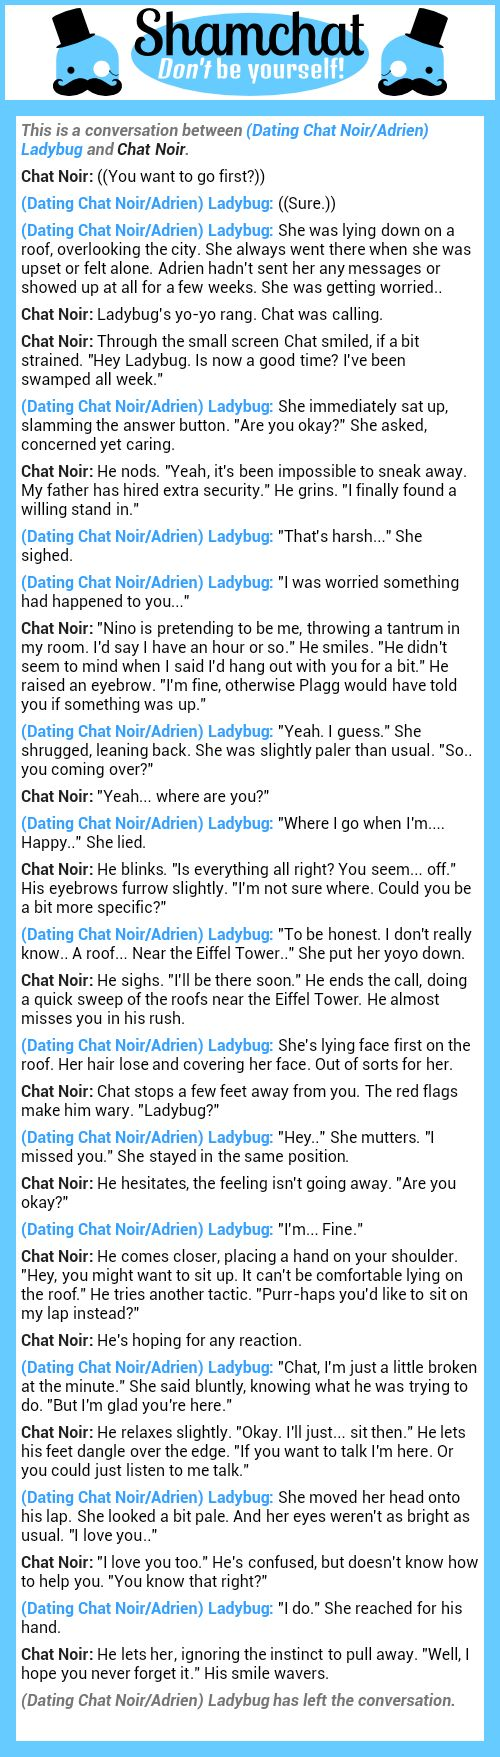 A conversation between Chat Noir and (Dating Chat Noir/Adrien) Ladybug